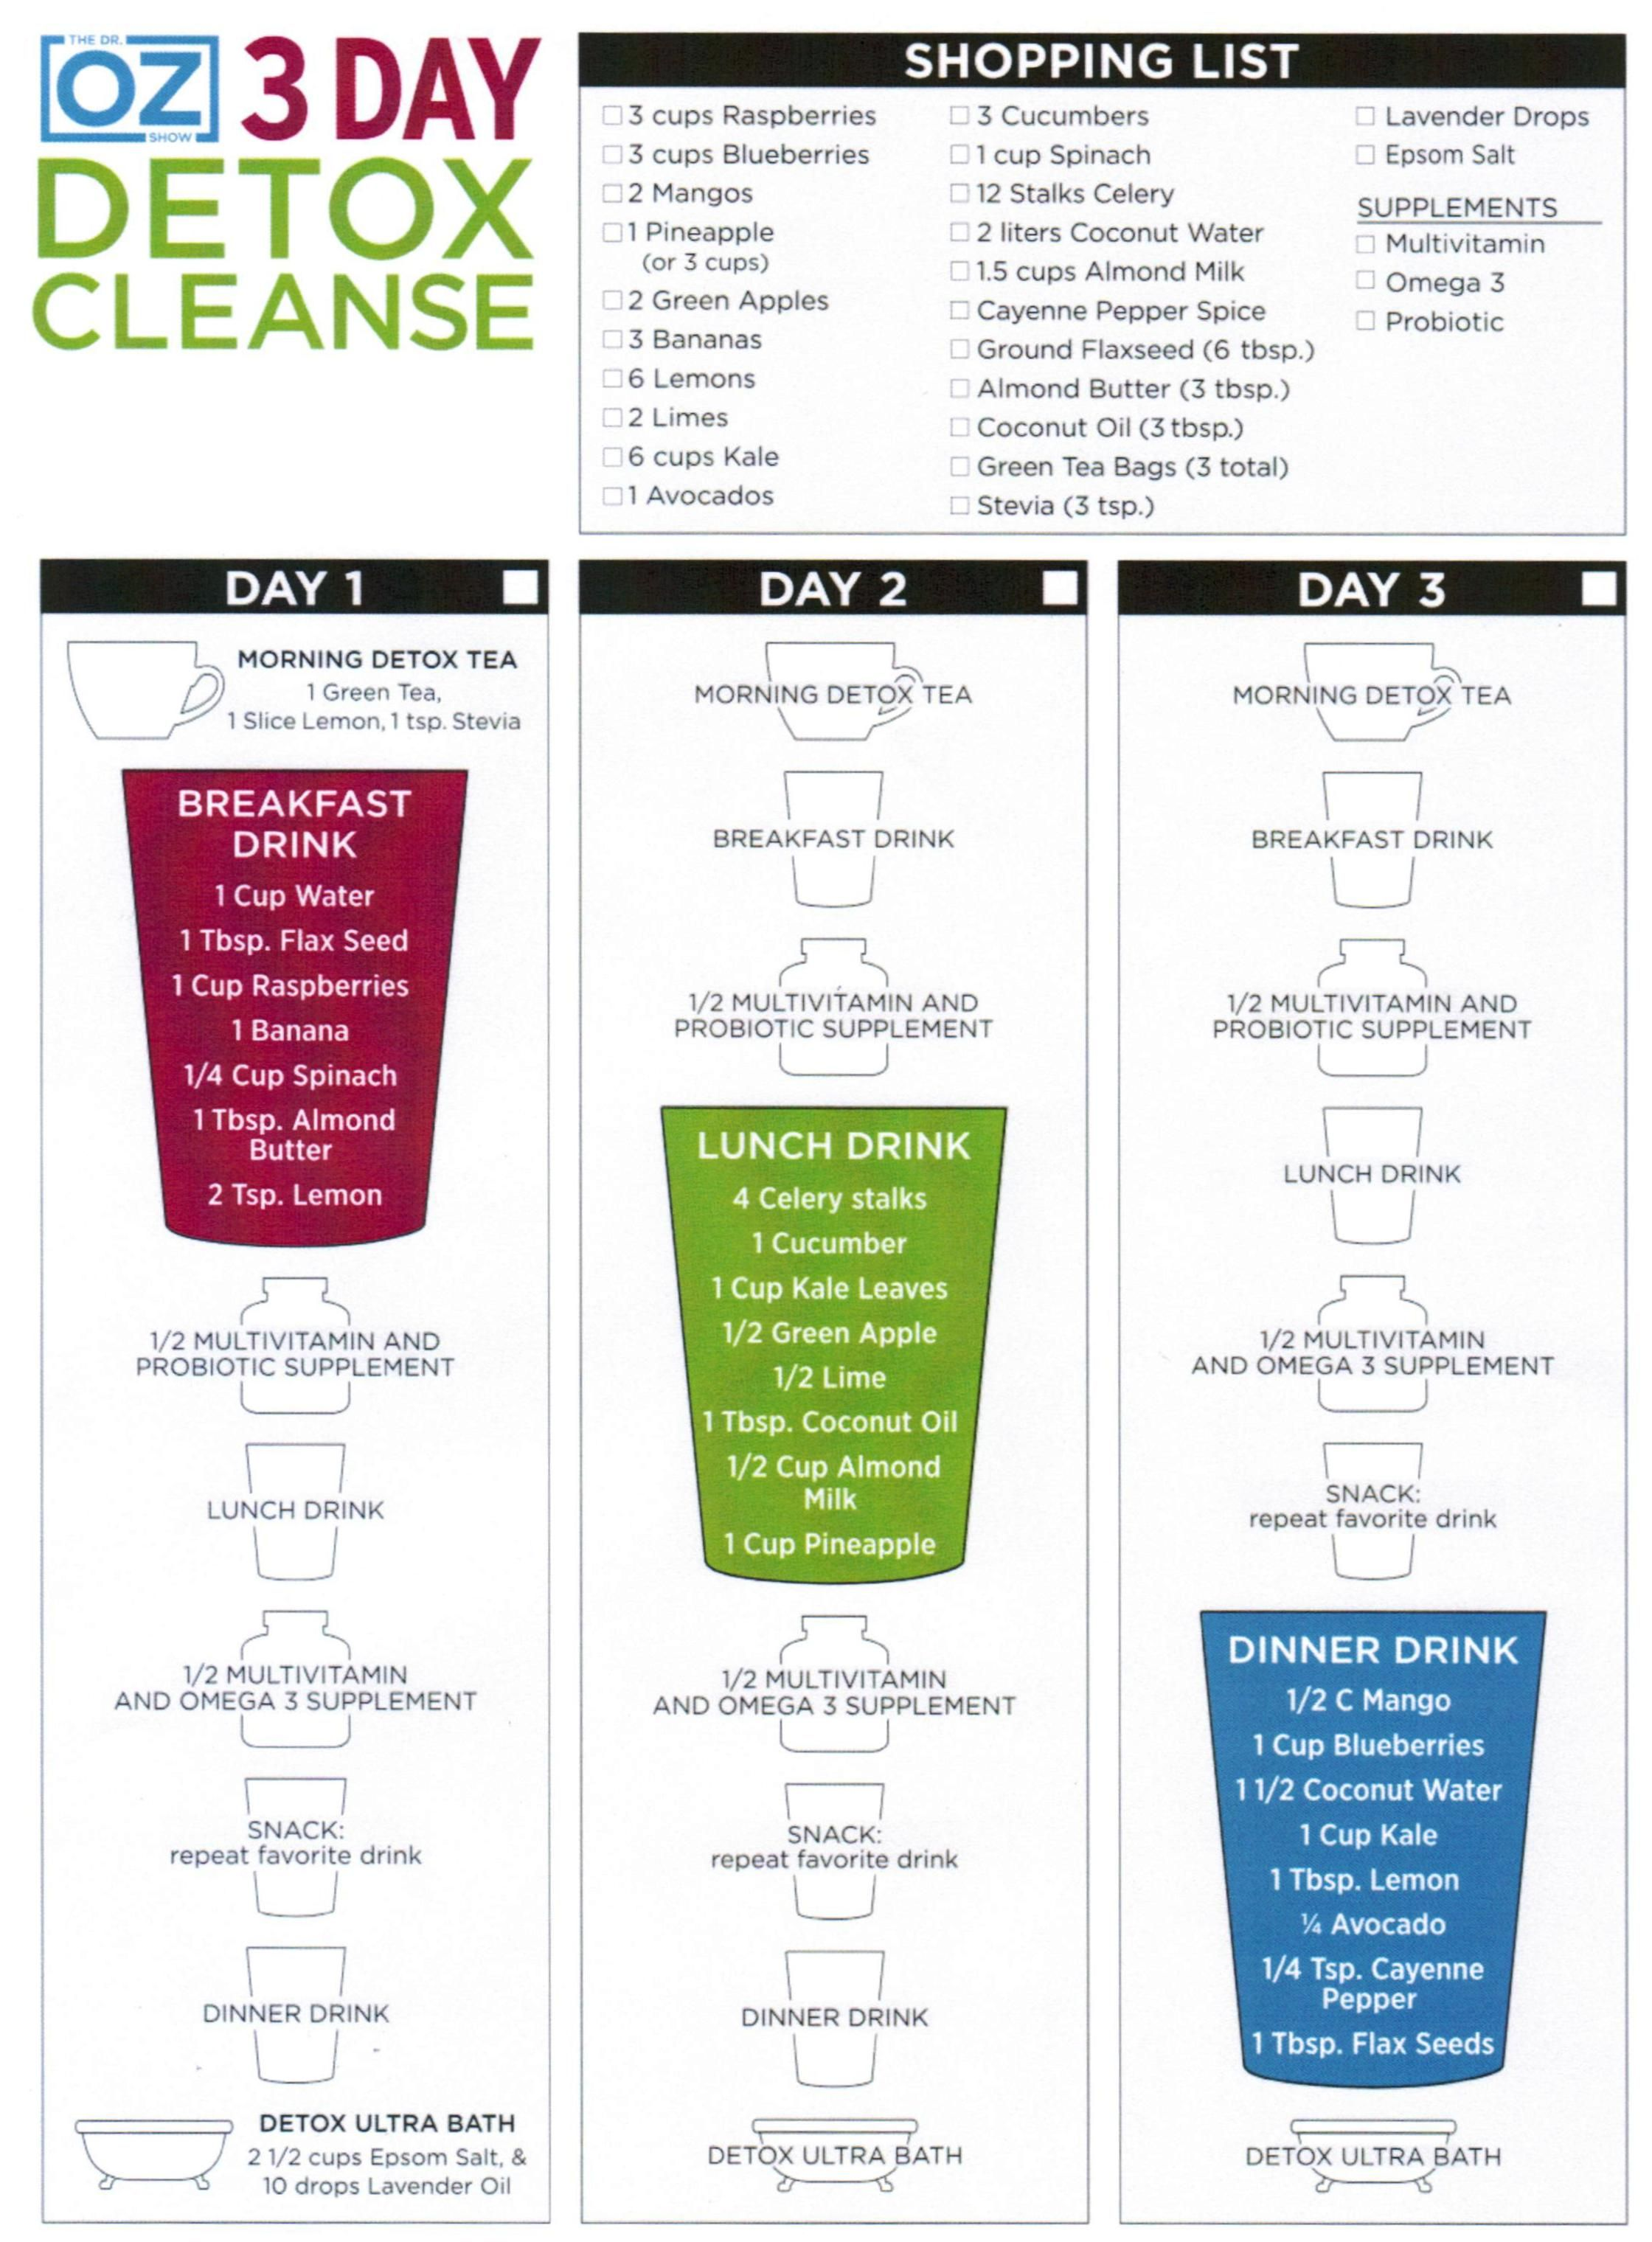 100 Pictures of 3 Day Detox Cleanse